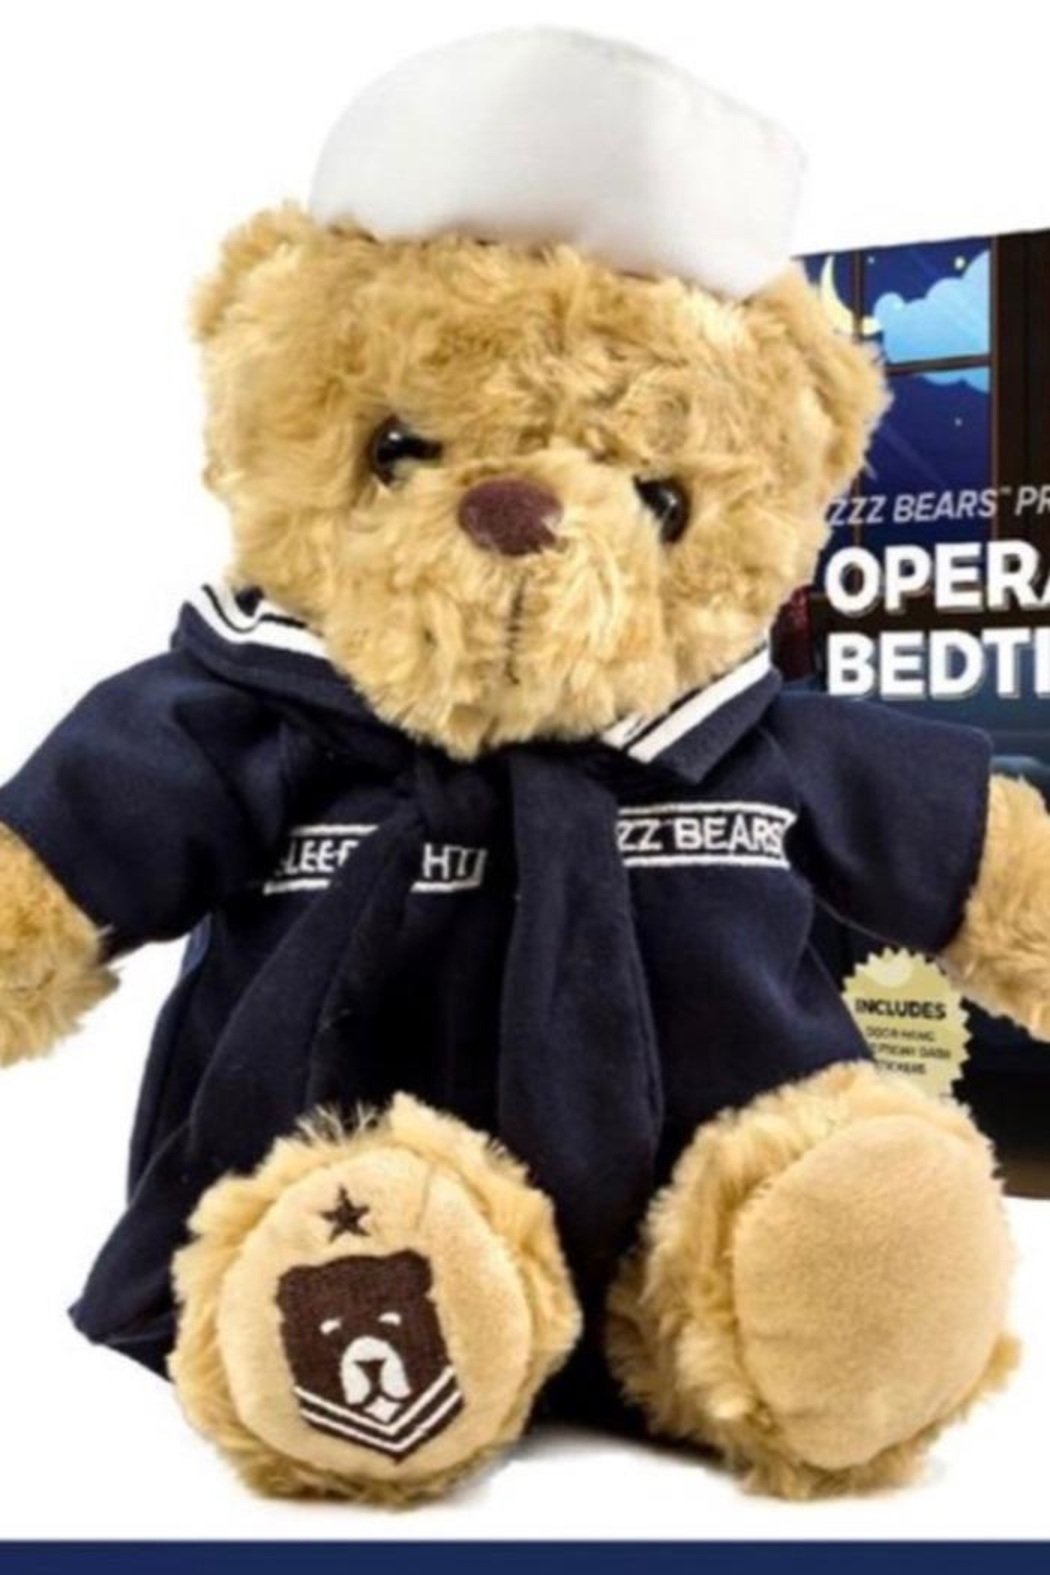 ZZZ Bears Sailor Sleeptight Navy Teddy Bear With Sleep System + Storybook - Main Image